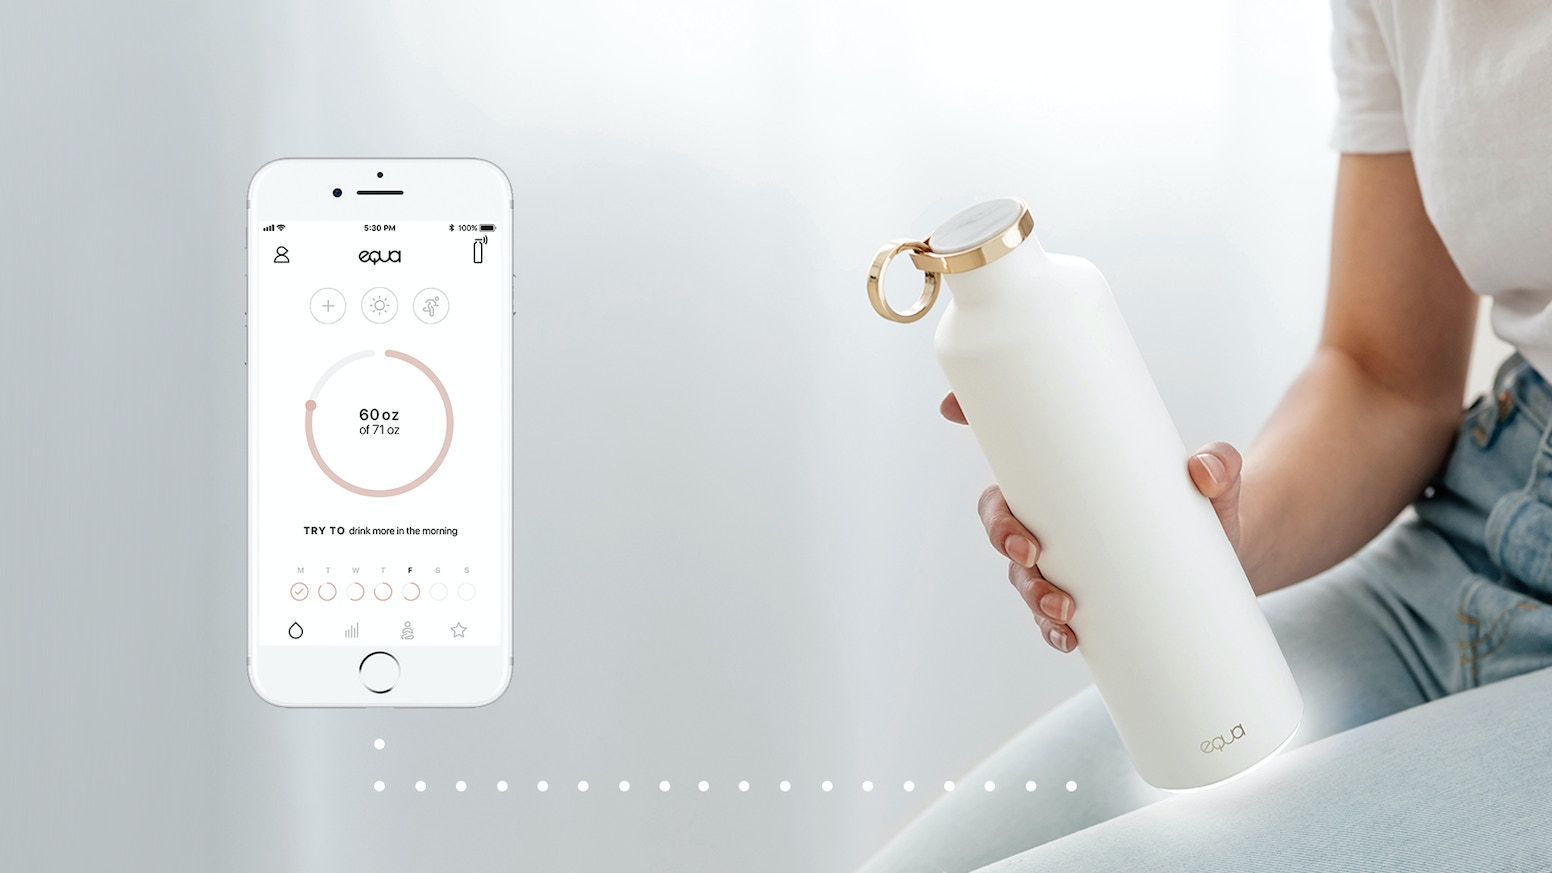 A healthy lifestyle reminder and hydration habit builder with motion sensor tech that knows when it's time for your next sip of water.